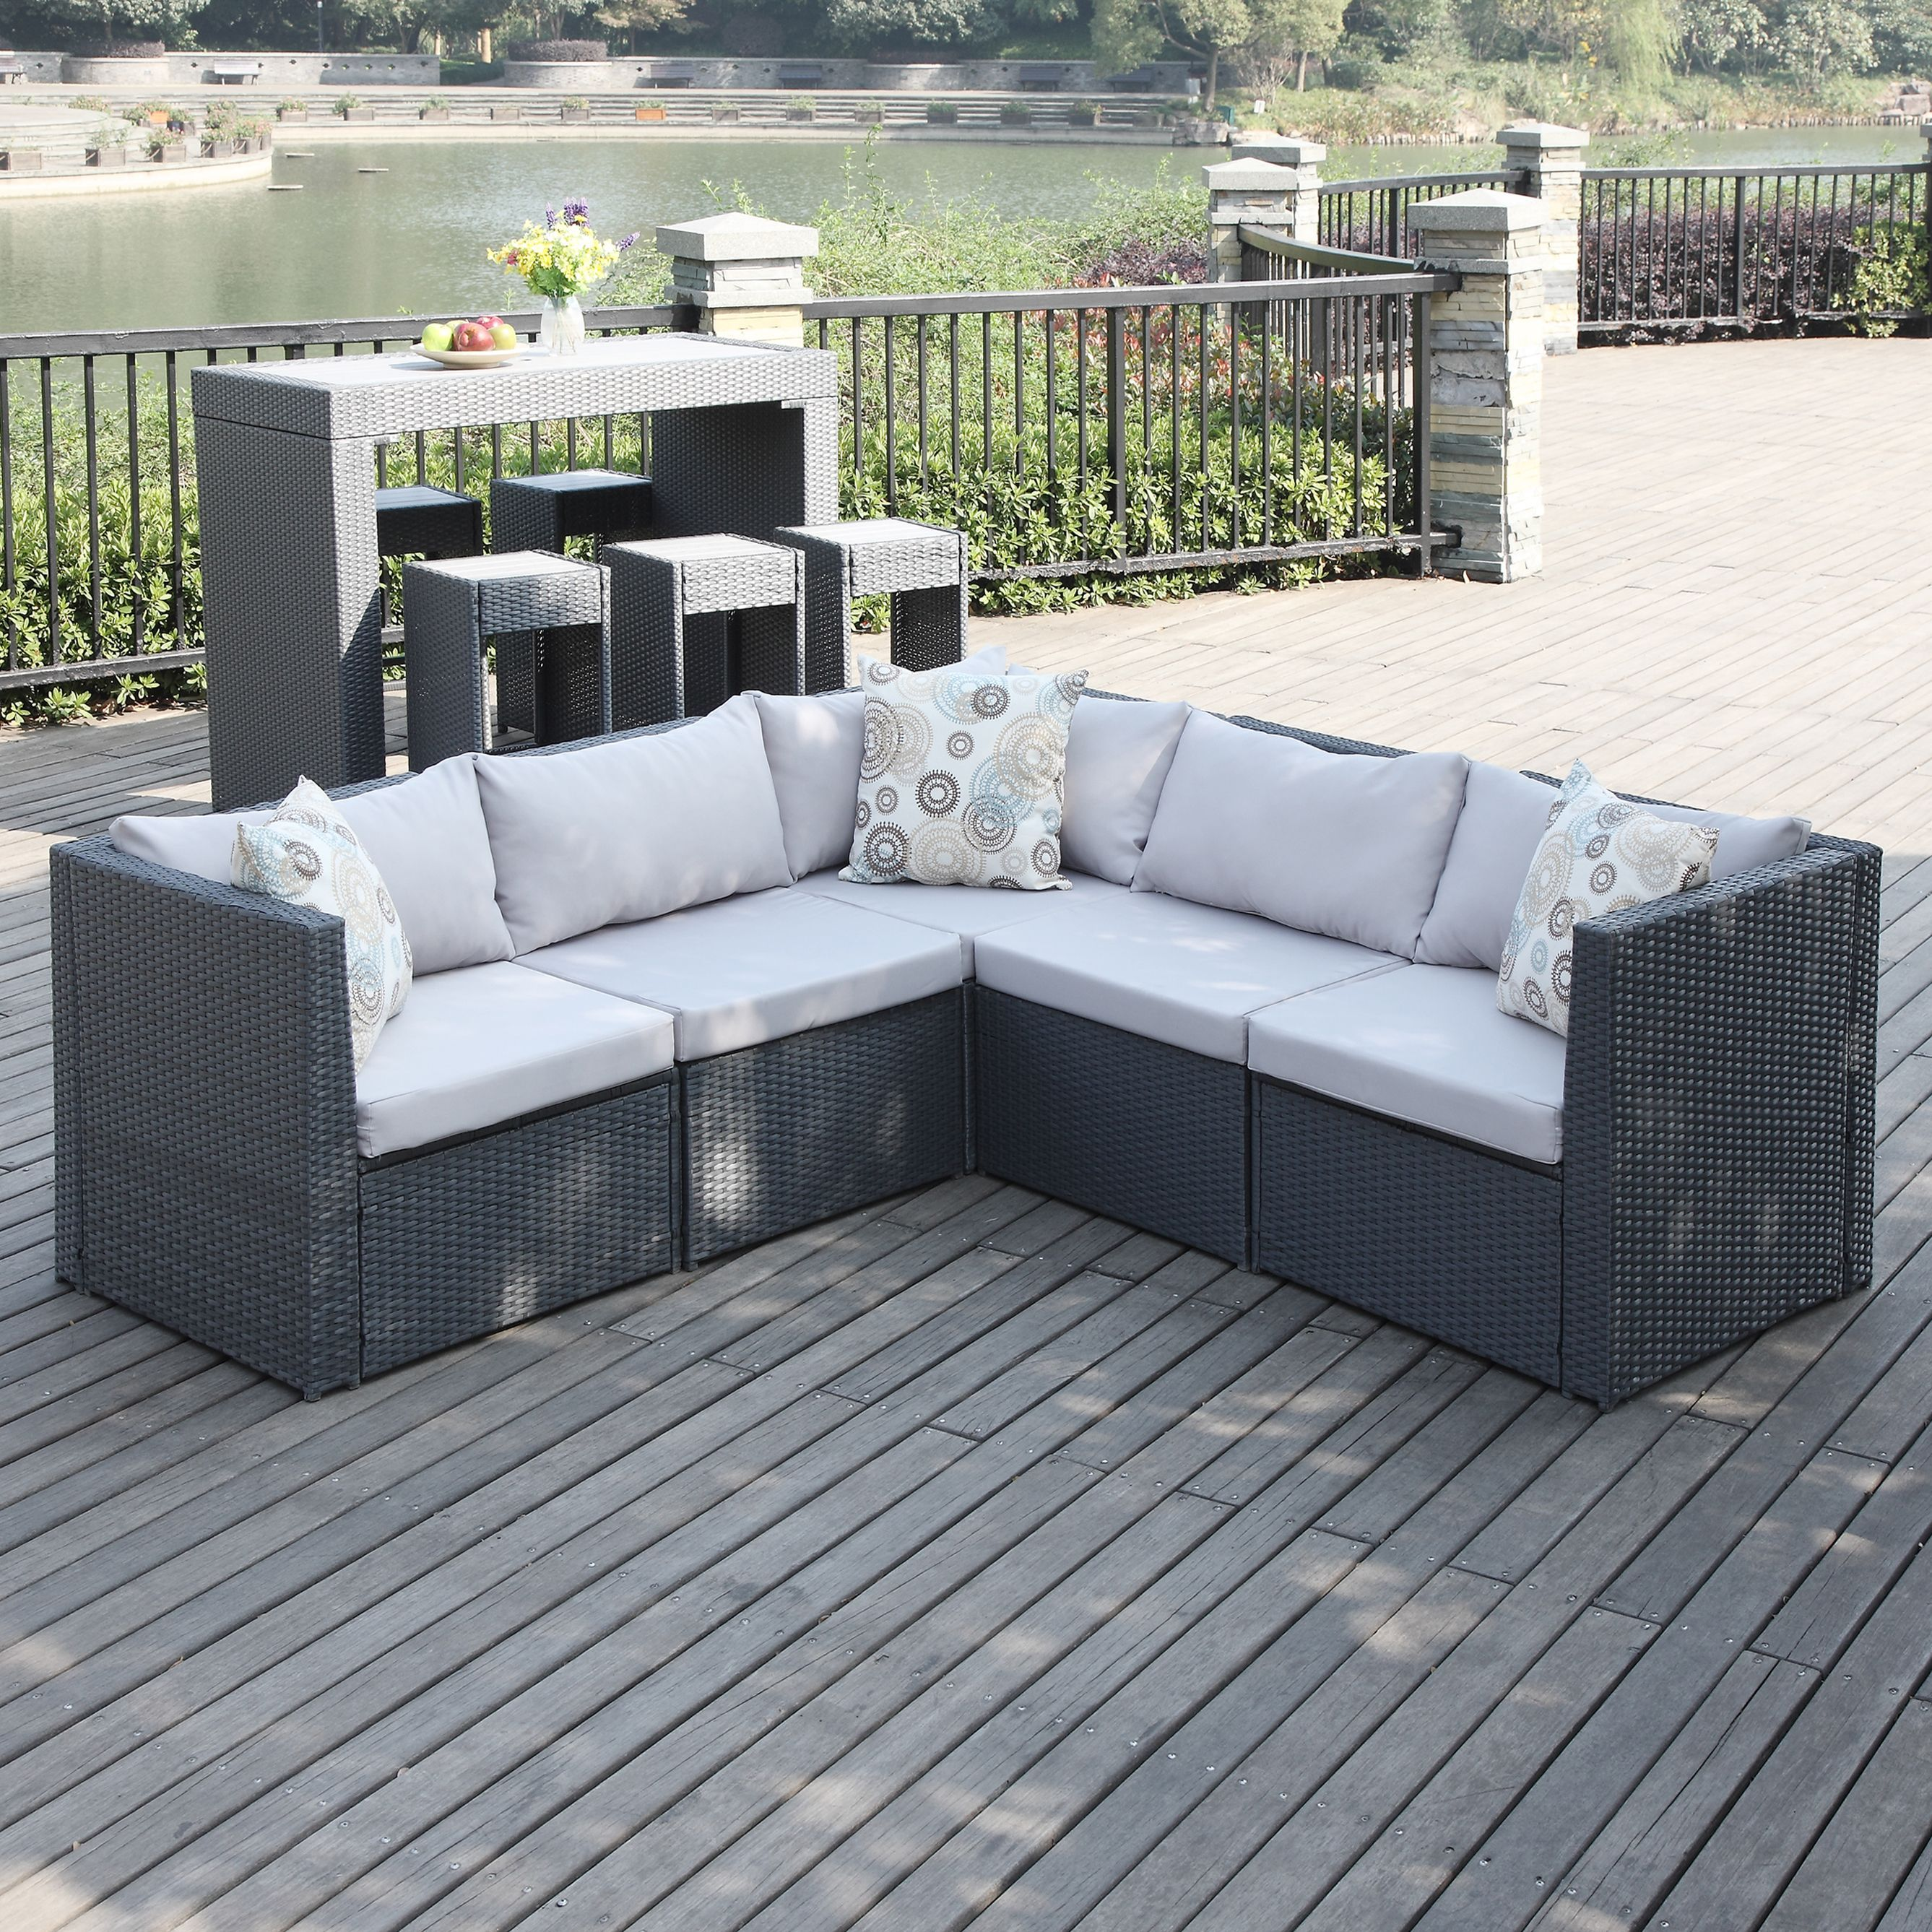 liverman wayfair brayden piece pdx sectional cushions reviews with set patio outdoor sale studio